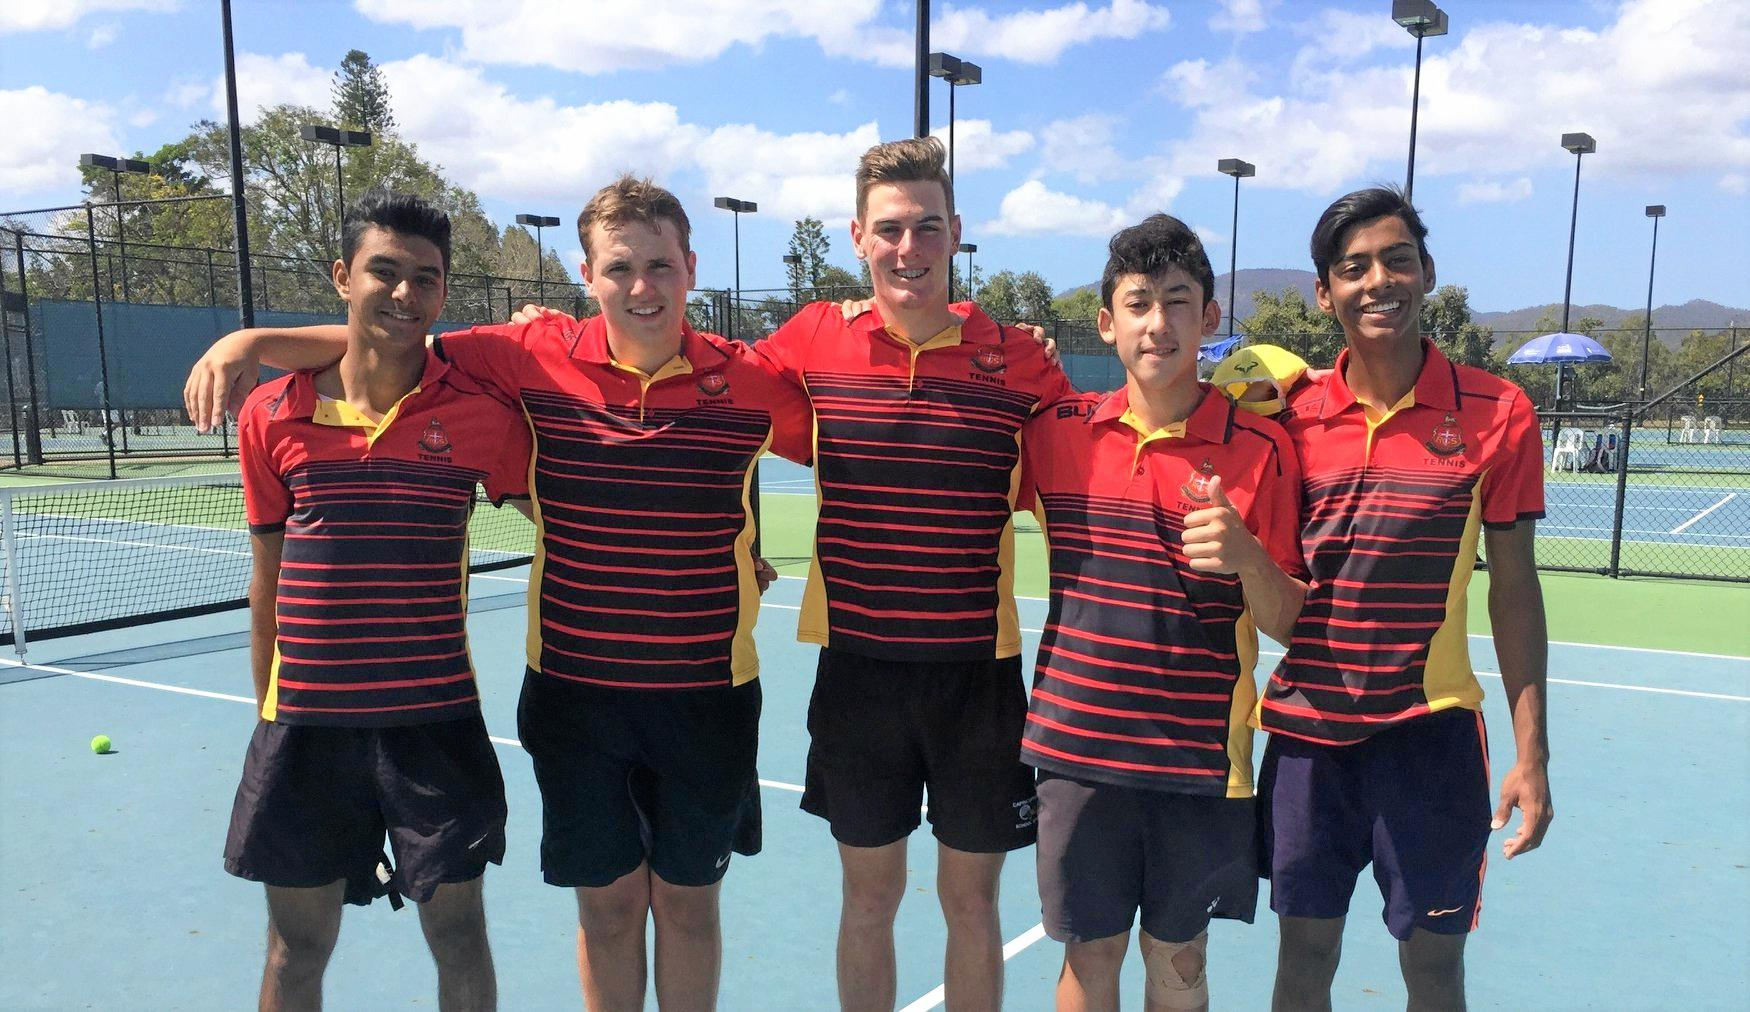 THUMBS UP: Abhinav Singh, Cooper Wright, Ben Funch, Kaz Killoran and Faizan Hussain were named Country Champions of the year.